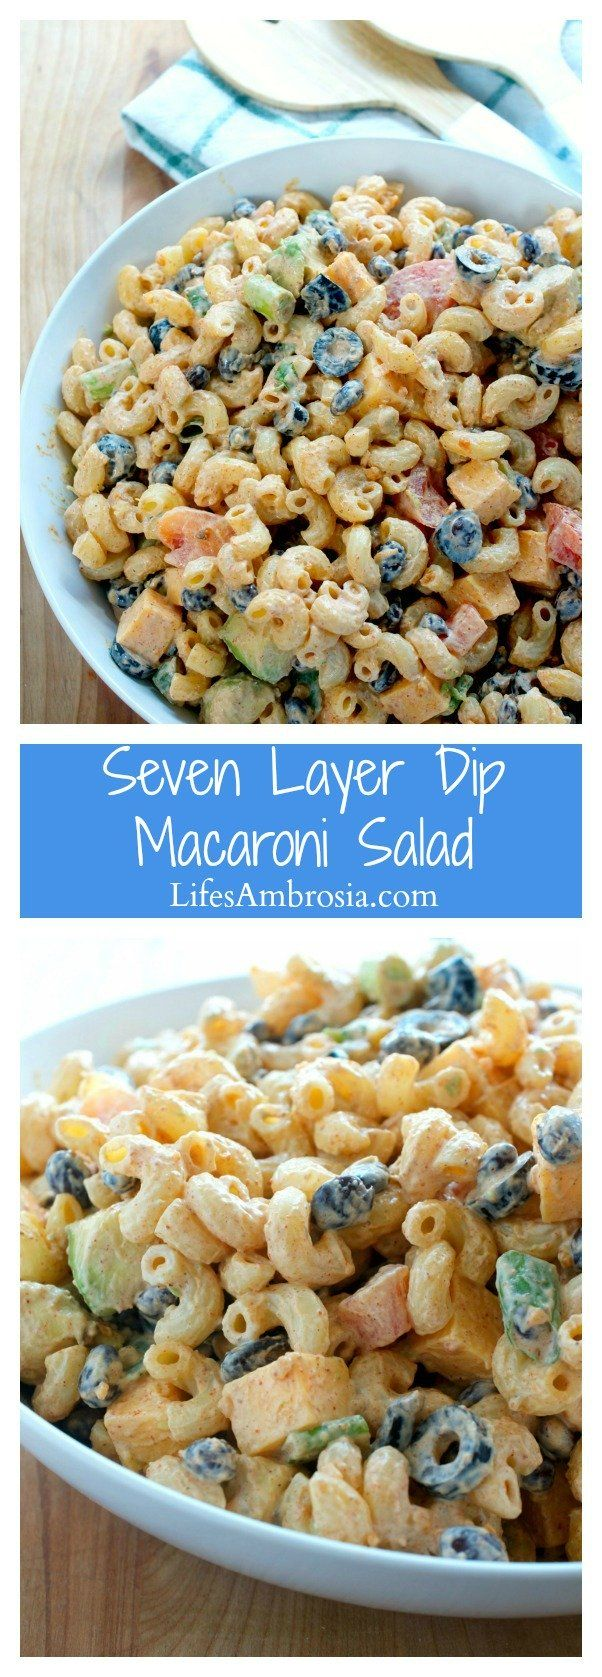 Seven Layer Dip Macaroni Salad is a combination of everyone's favorite potluck dishes: macaroni salad and seven layer dip. Perfect for potlucks!